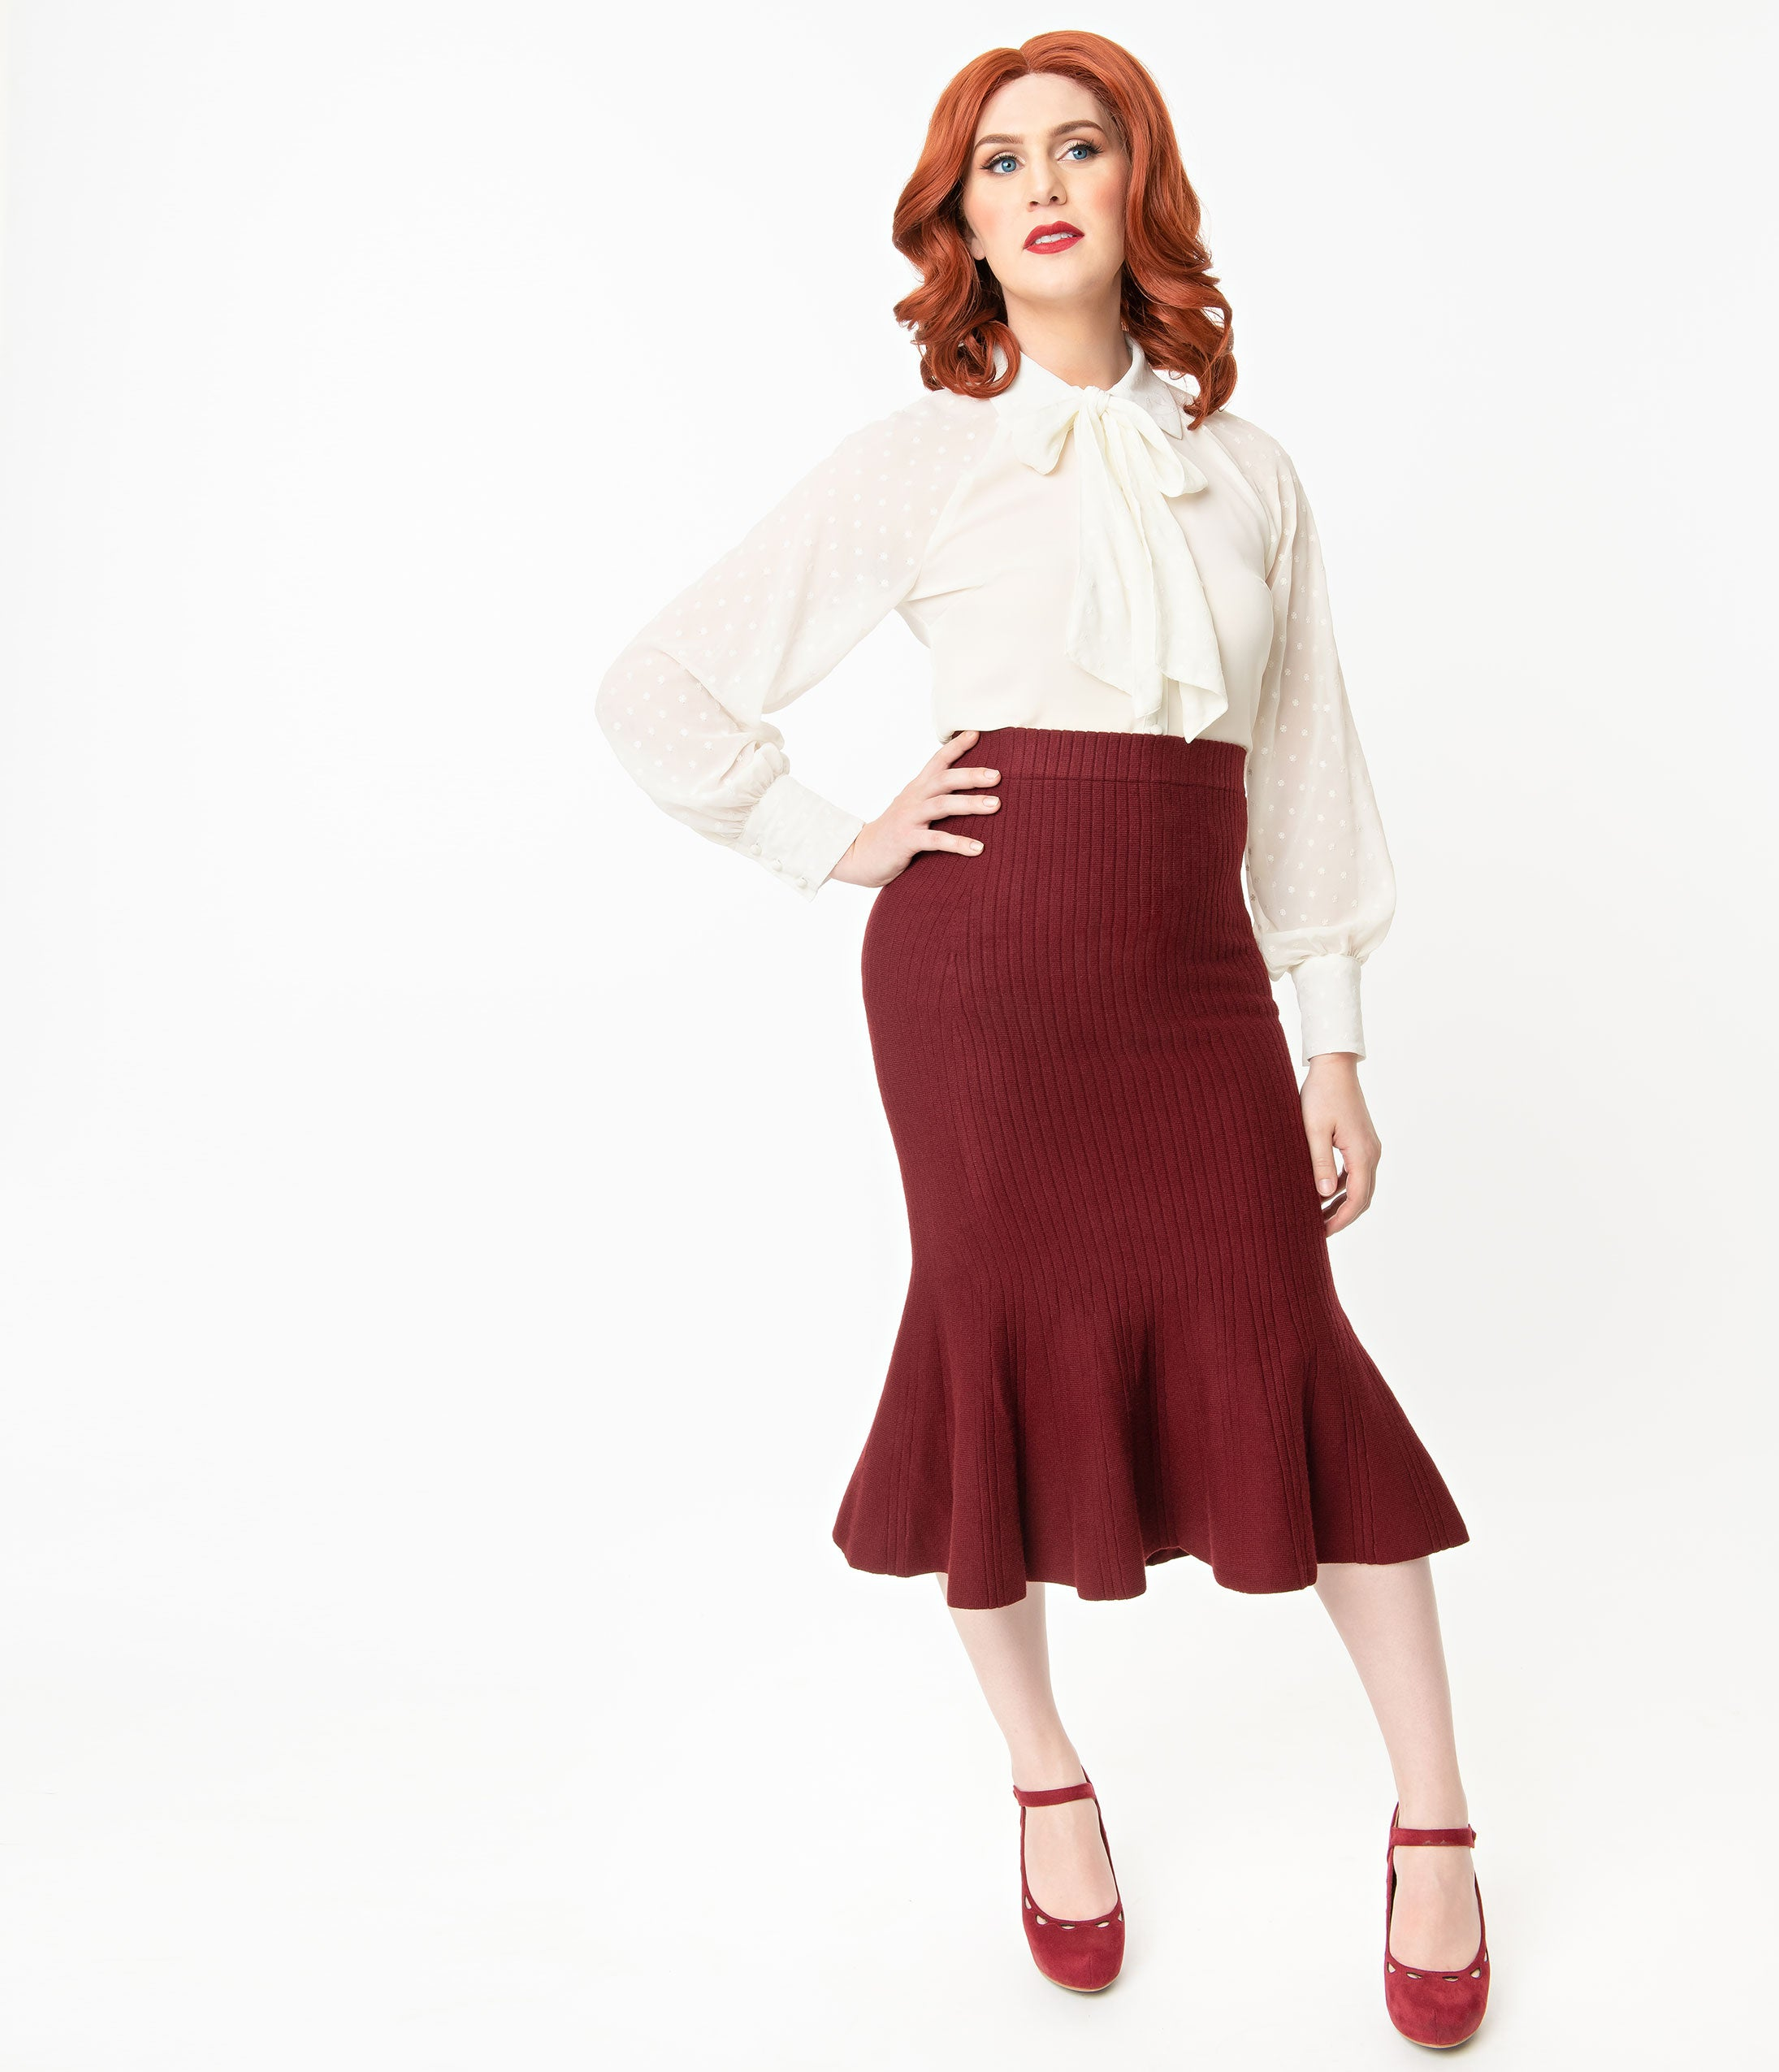 1930s Style Skirts : Midi Skirts, Tea Length, Pleated Retro Style Burgundy Sweater Trumpet Skirt $62.00 AT vintagedancer.com